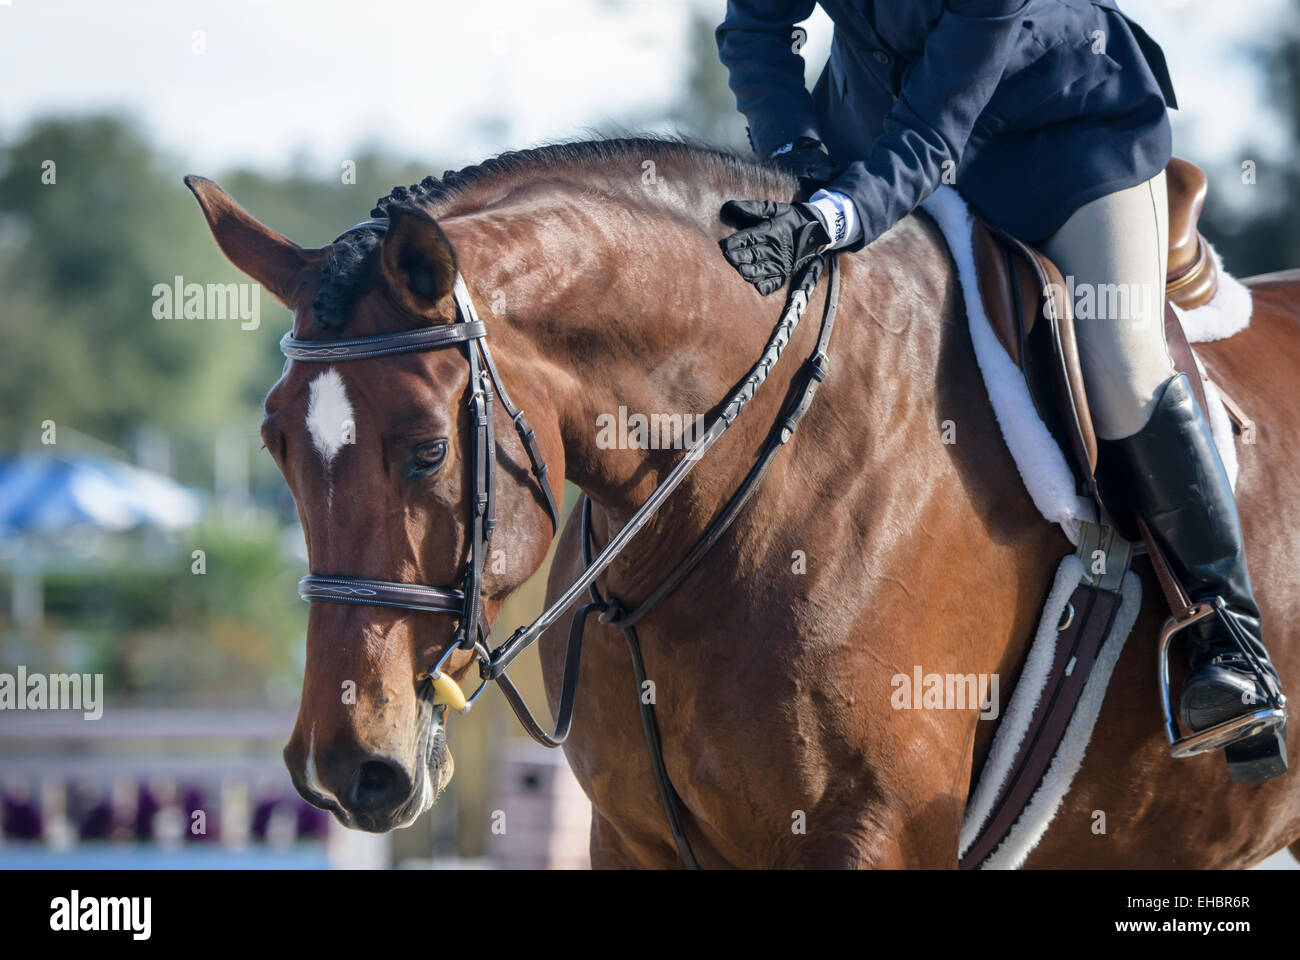 Intimate moment with horse and teenage girl at Hunter jumper show competition - Stock Image